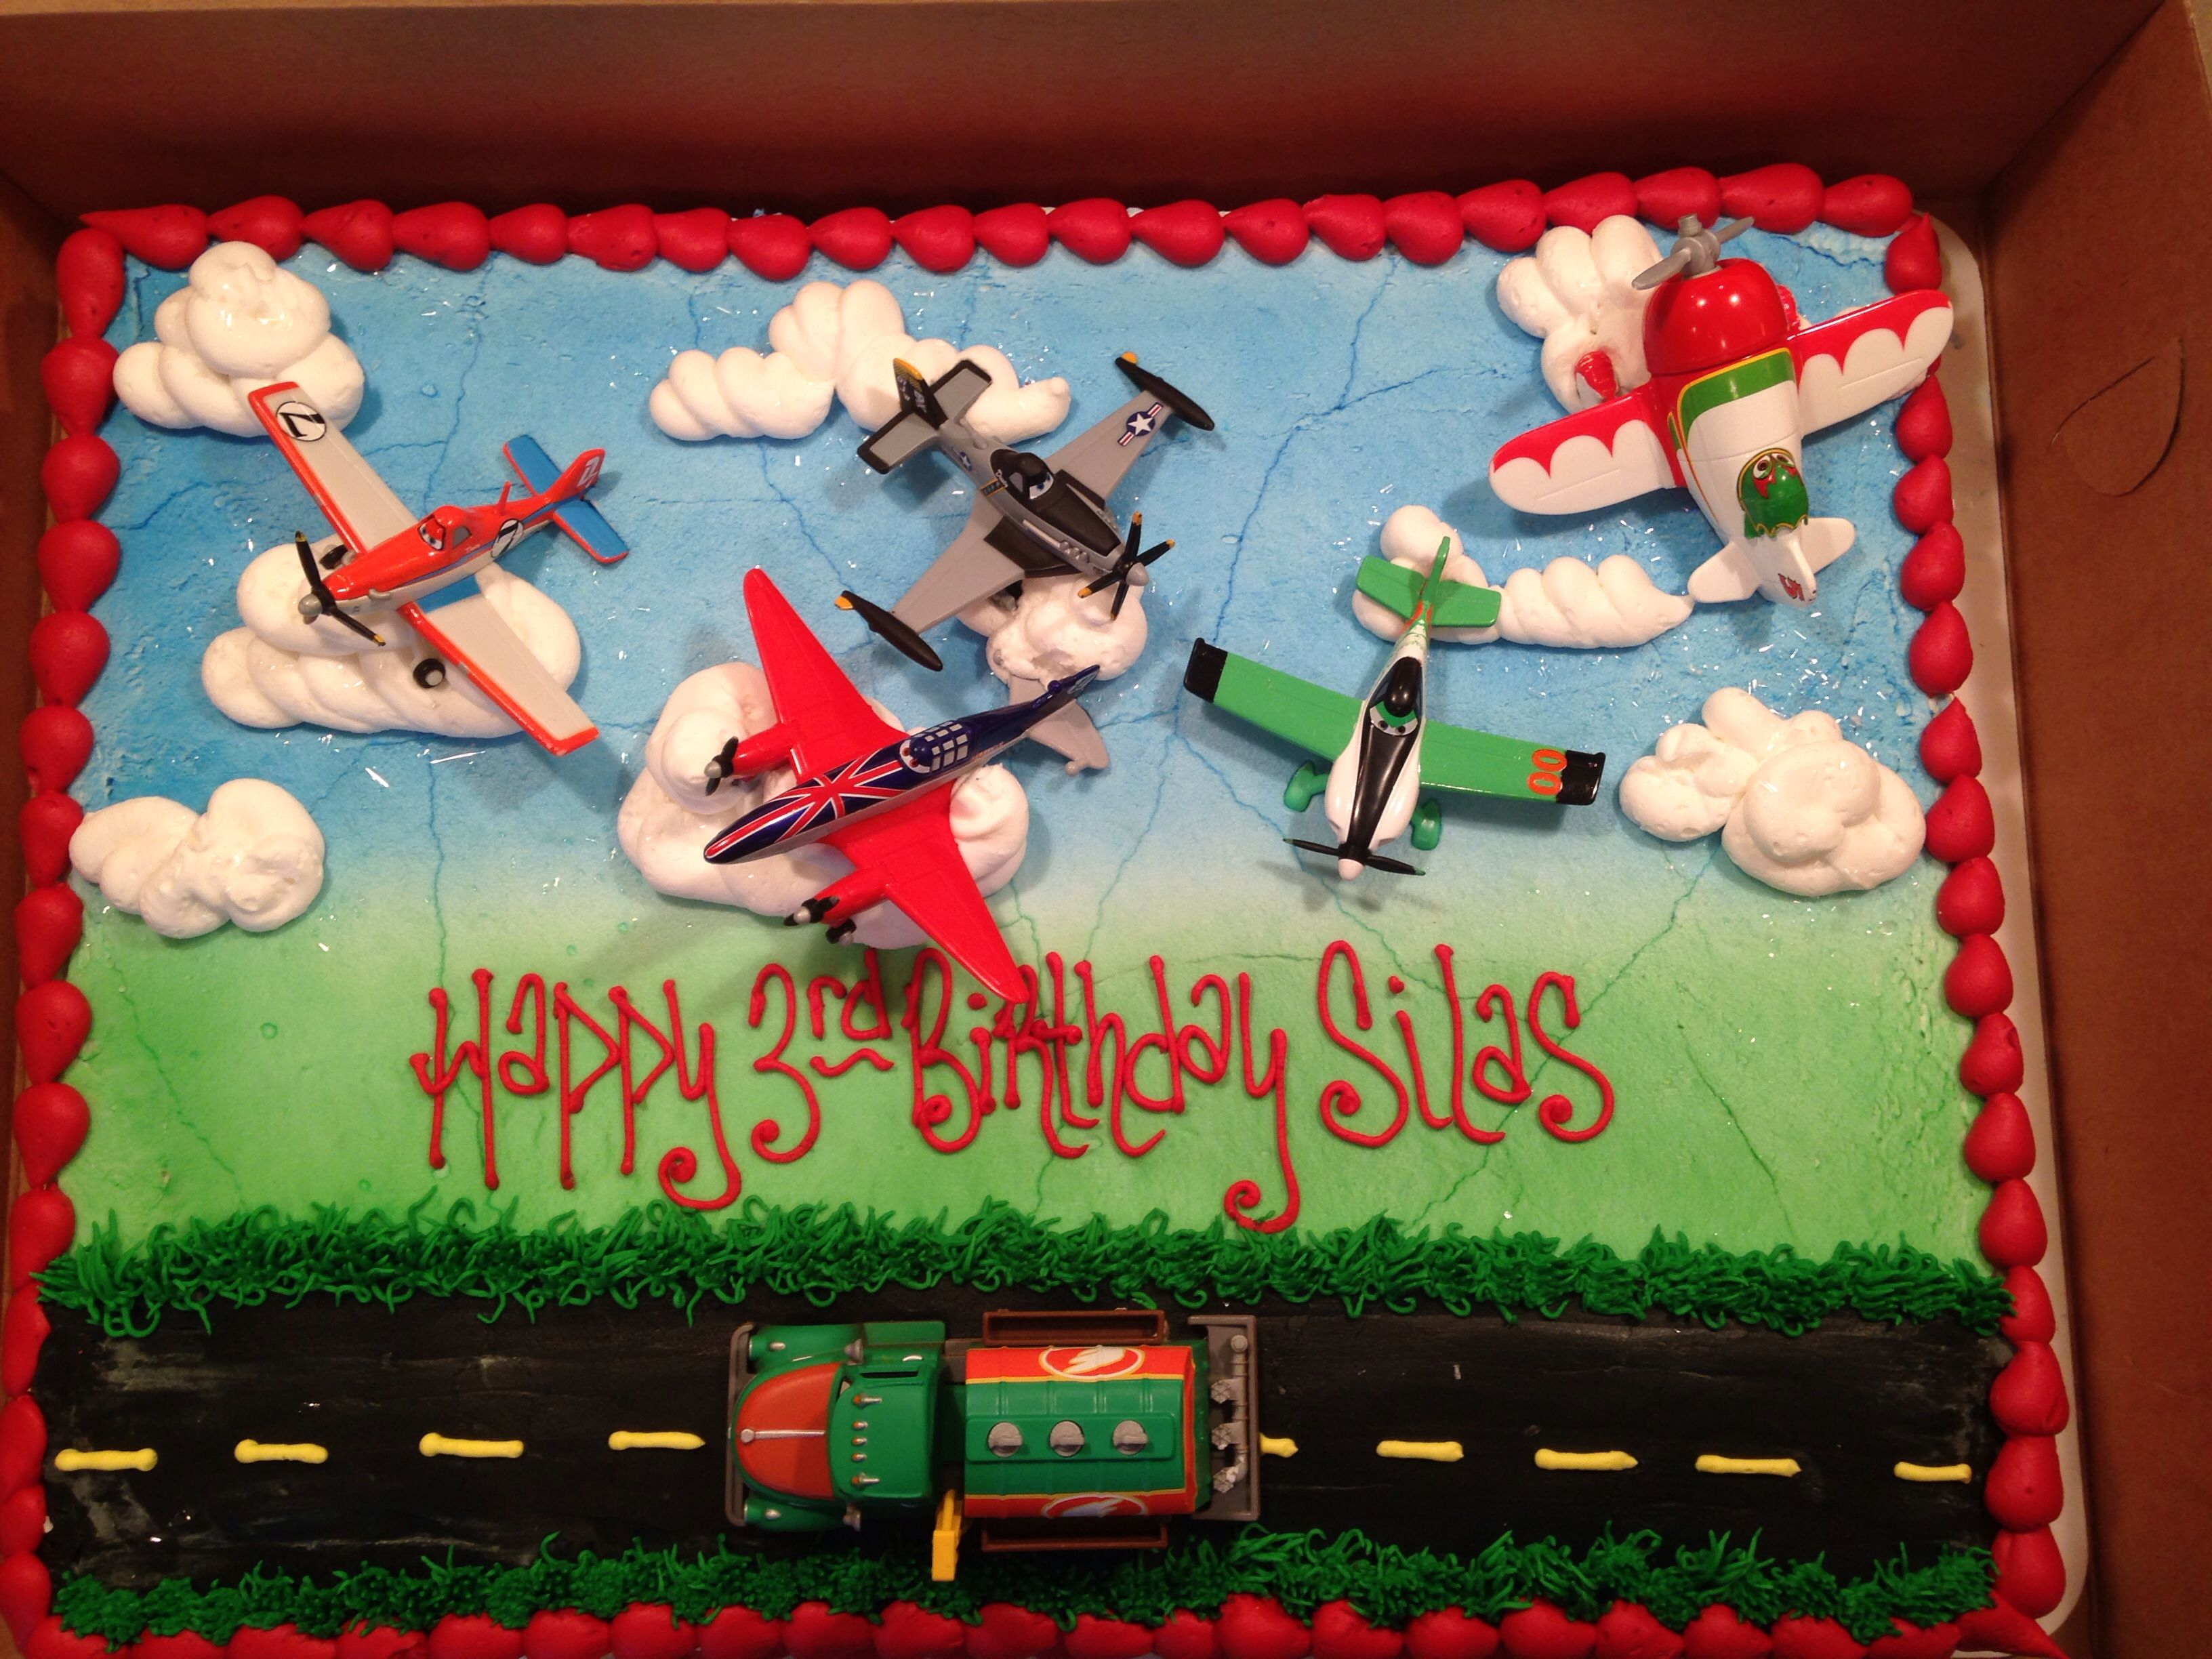 Disney Planes Birthday Cake